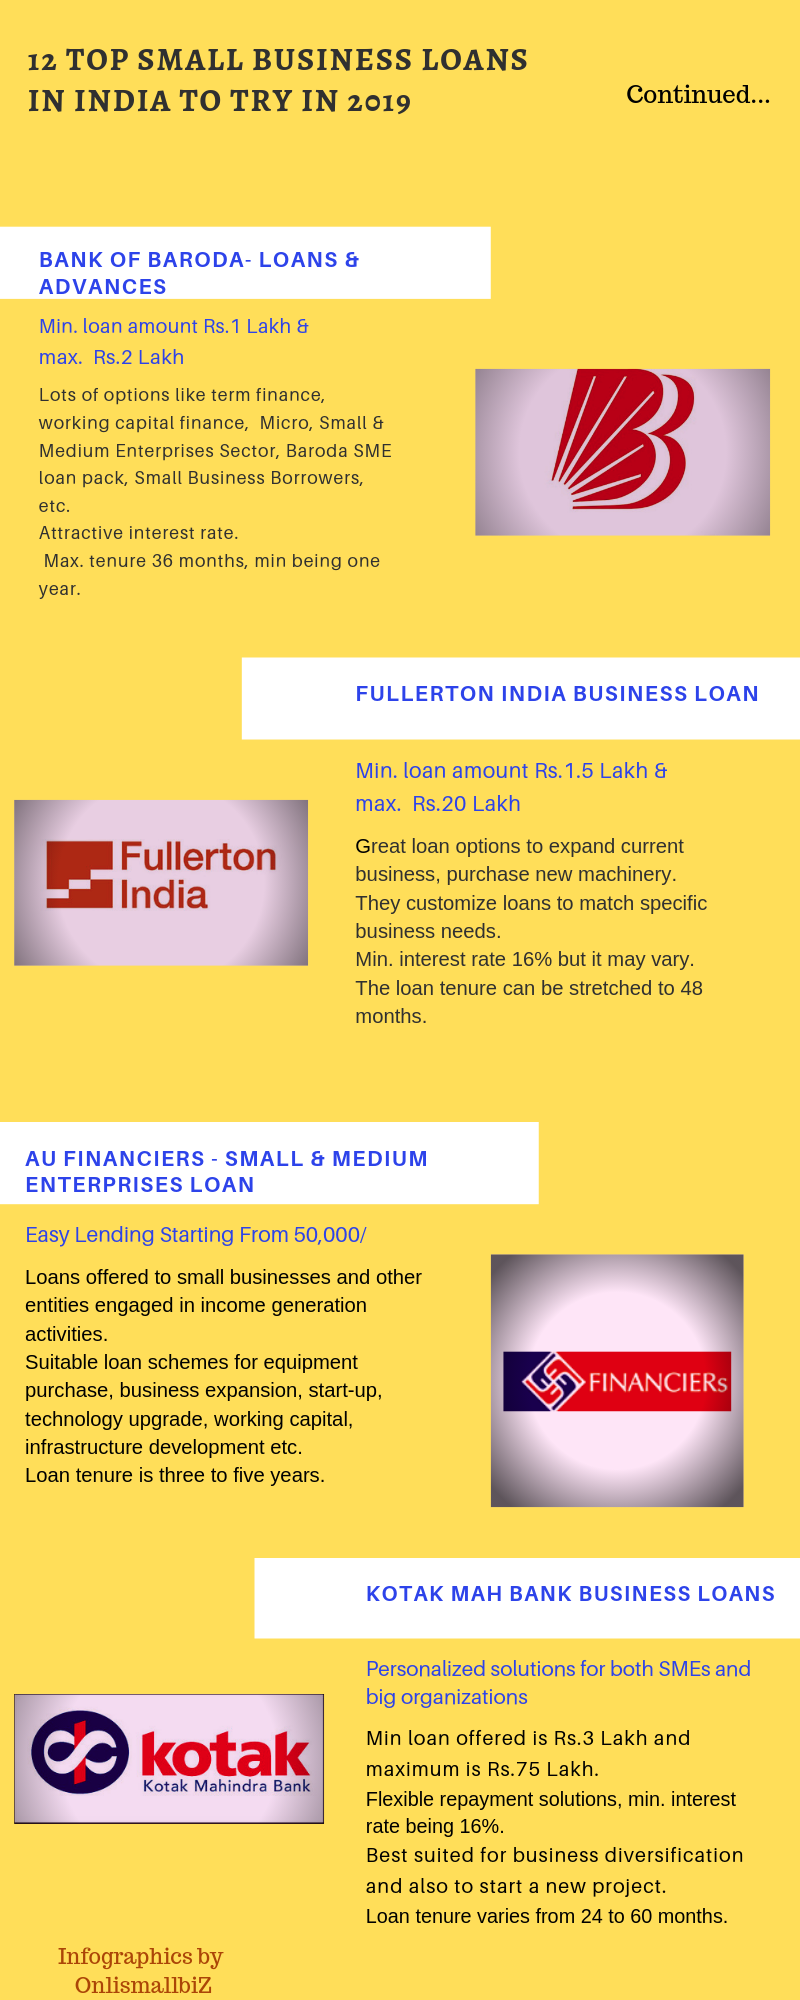 small business loans in india- infographic_2